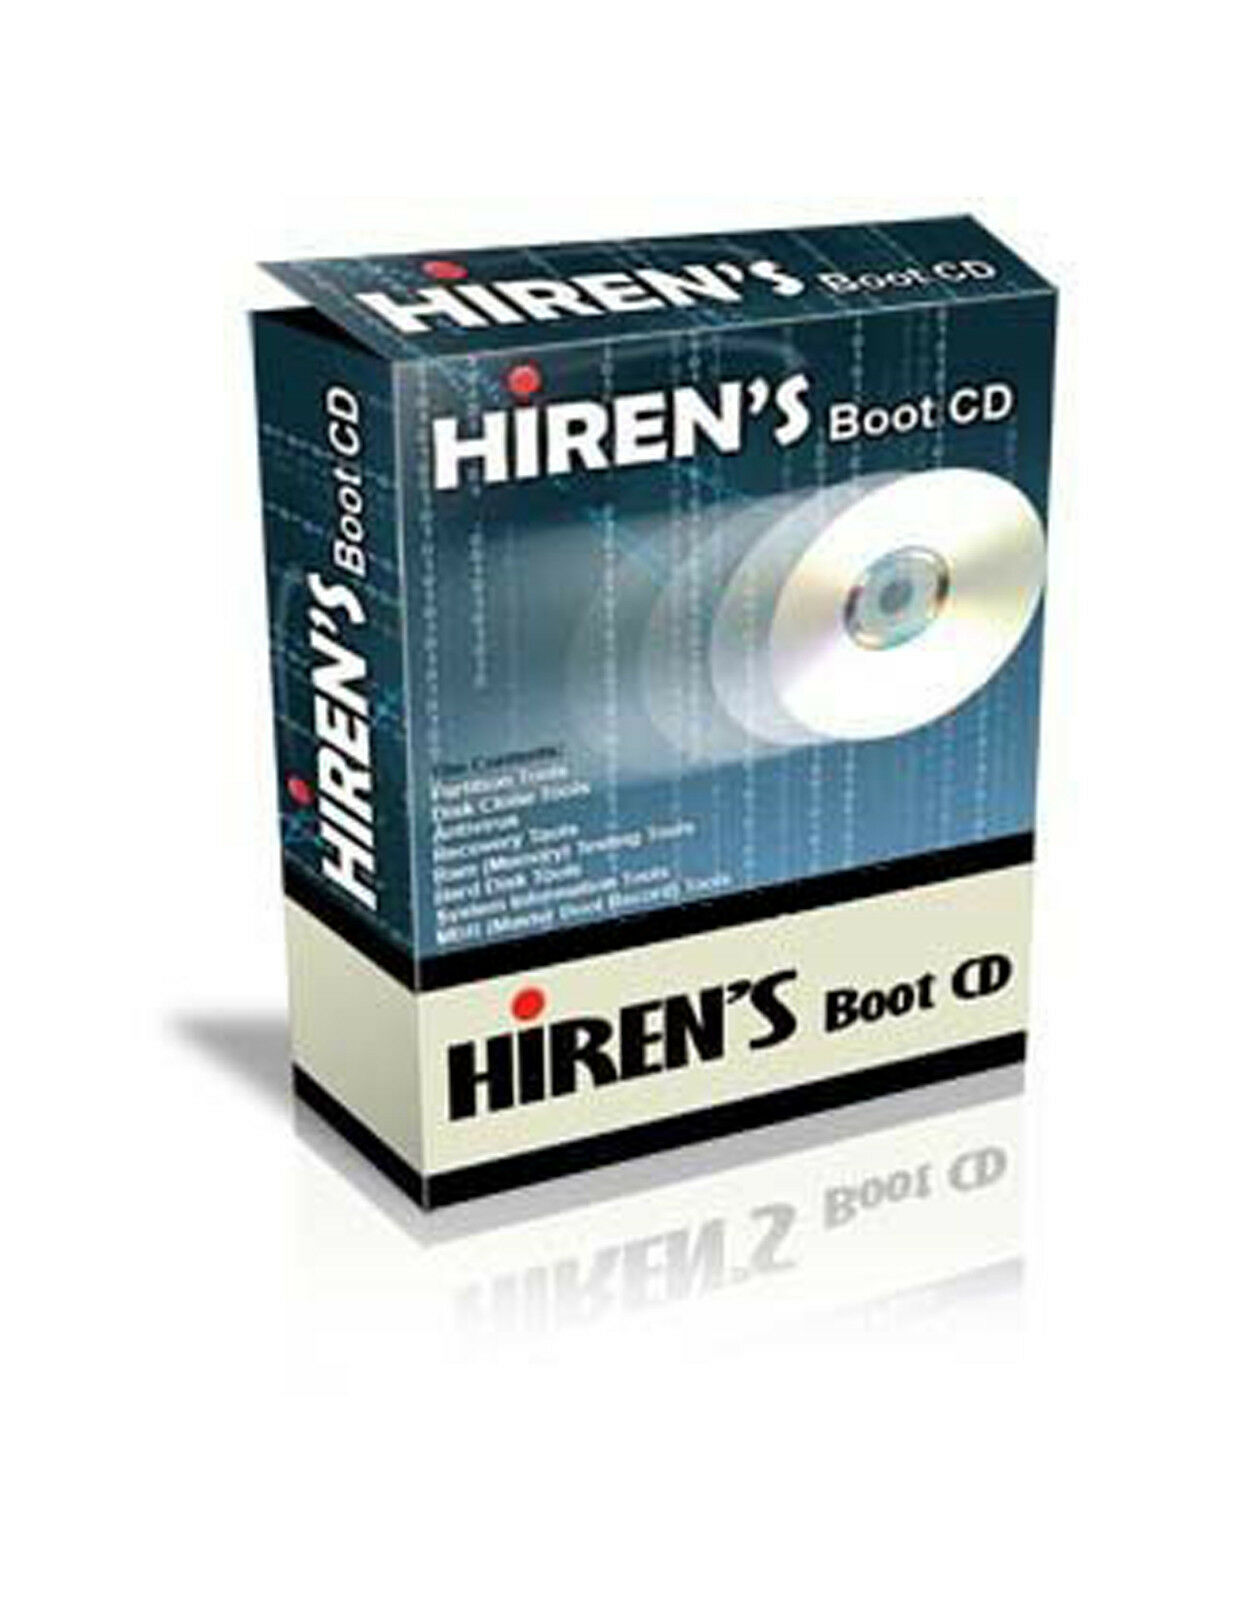 Hirens Boot CD - Computer Repair Tech & Password Recovery